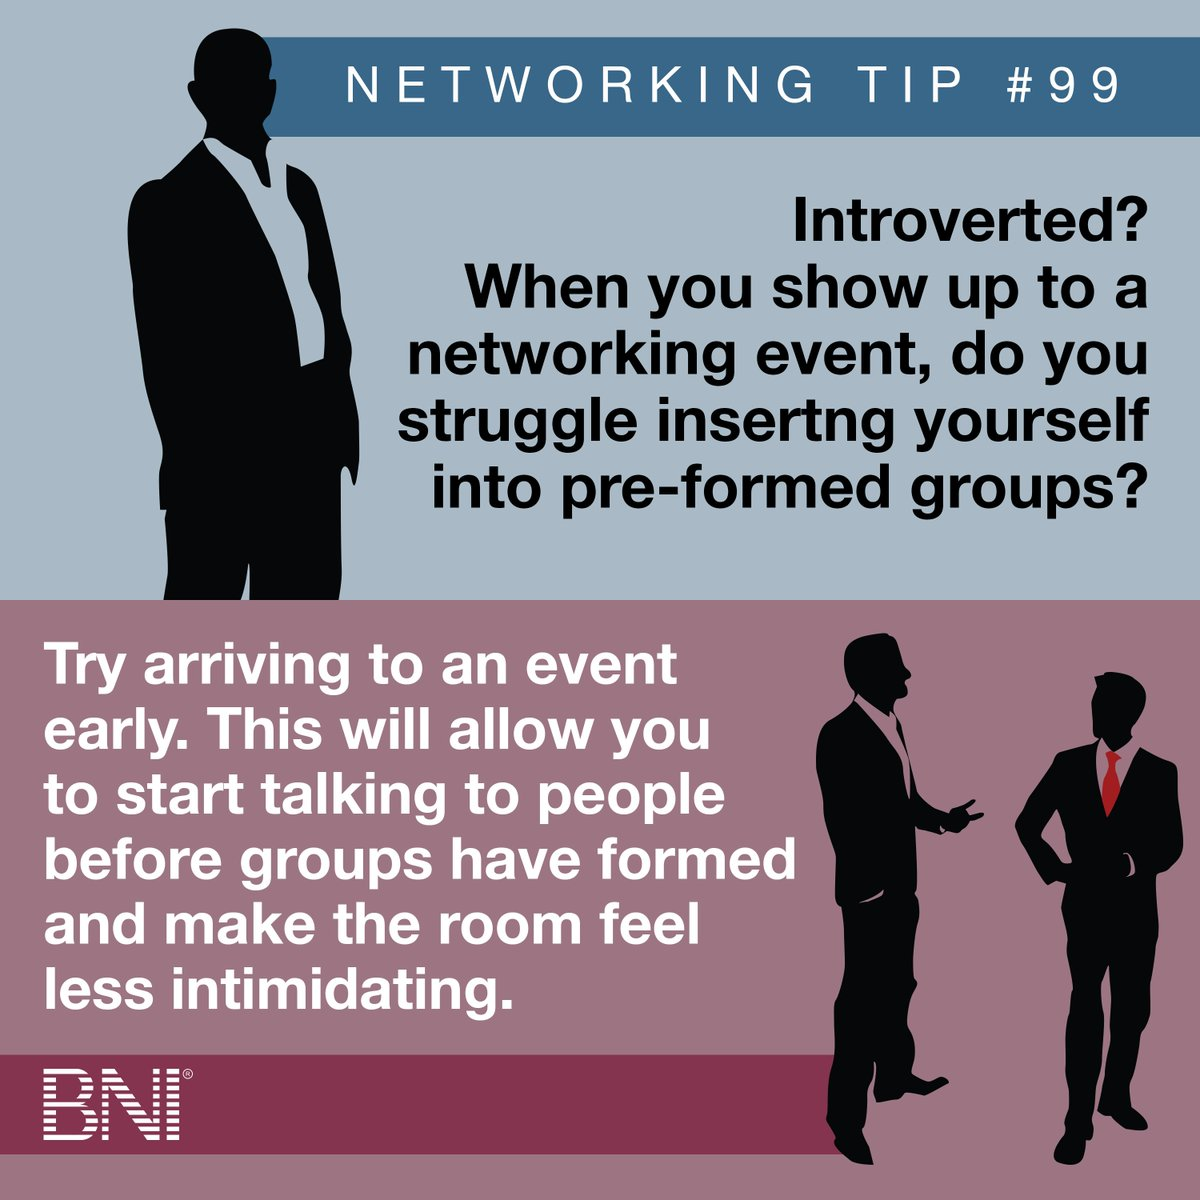 Calling all introverts: #networking doesn't have to be so draining. #tips https://t.co/4xkjSimniF